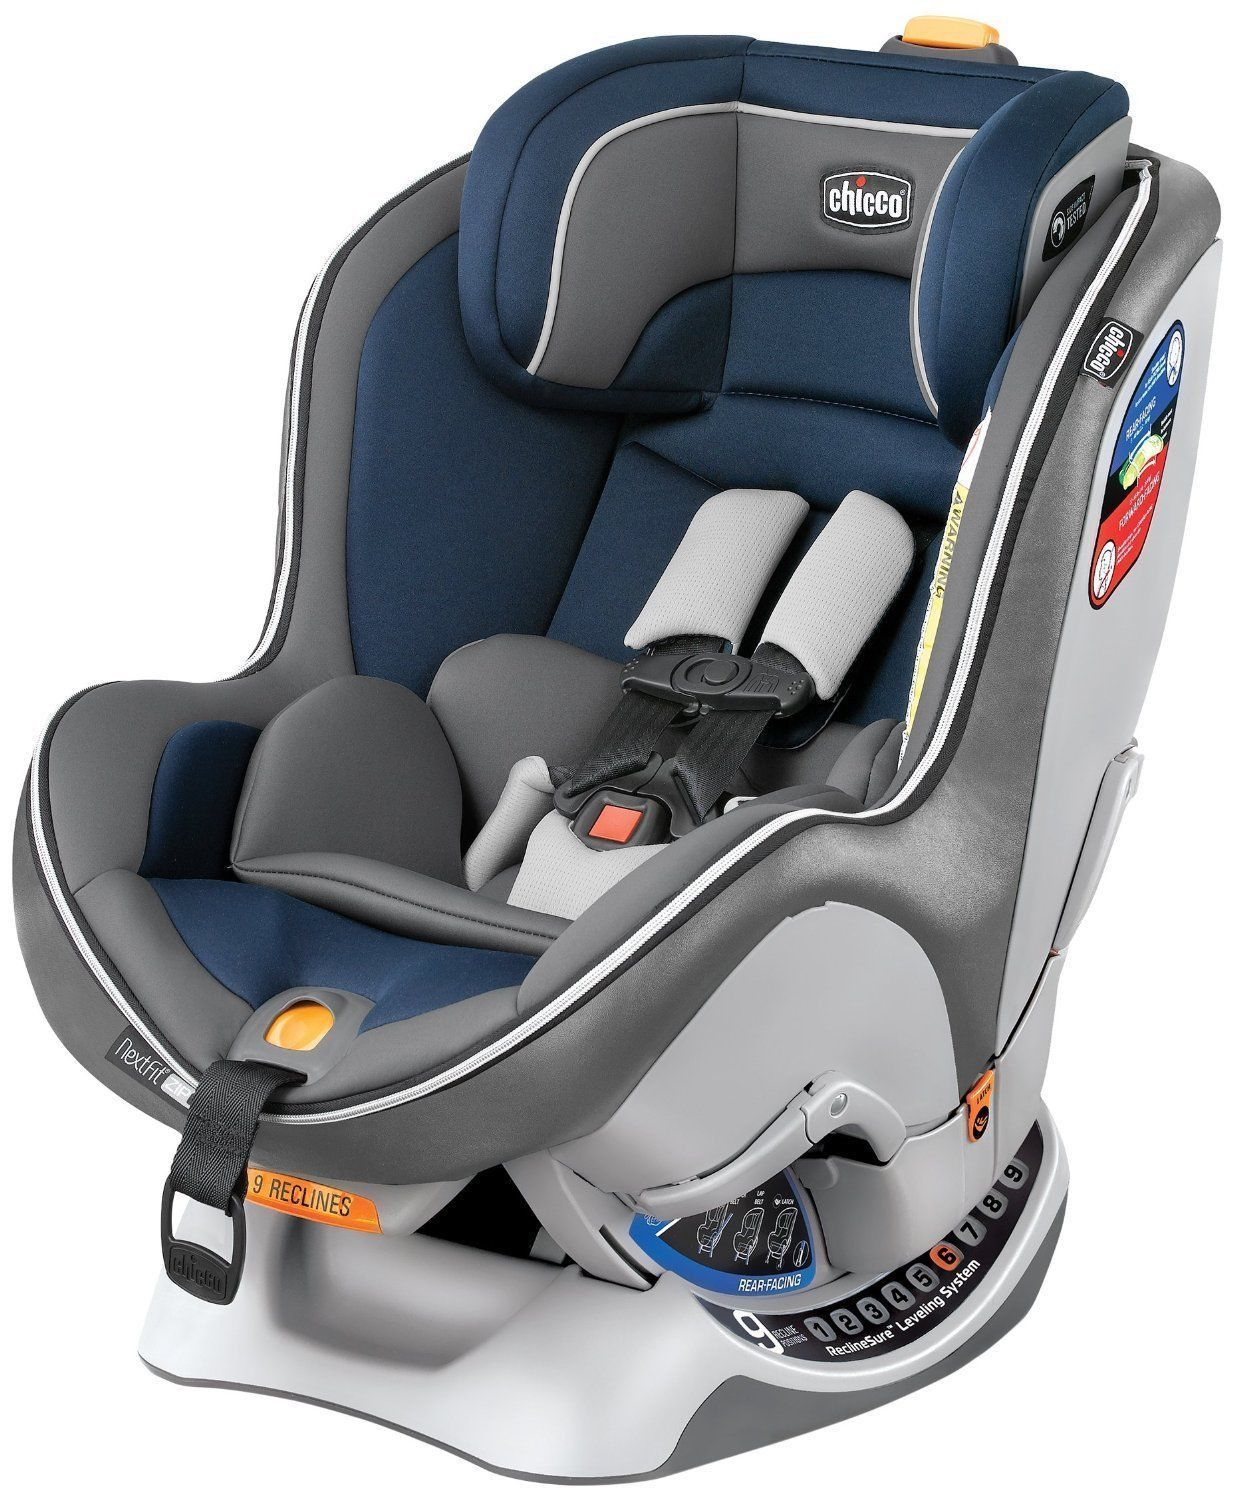 Chicco Nextfit Zip Convertible Child Safety Easy Install Car Seat Shire Https Www